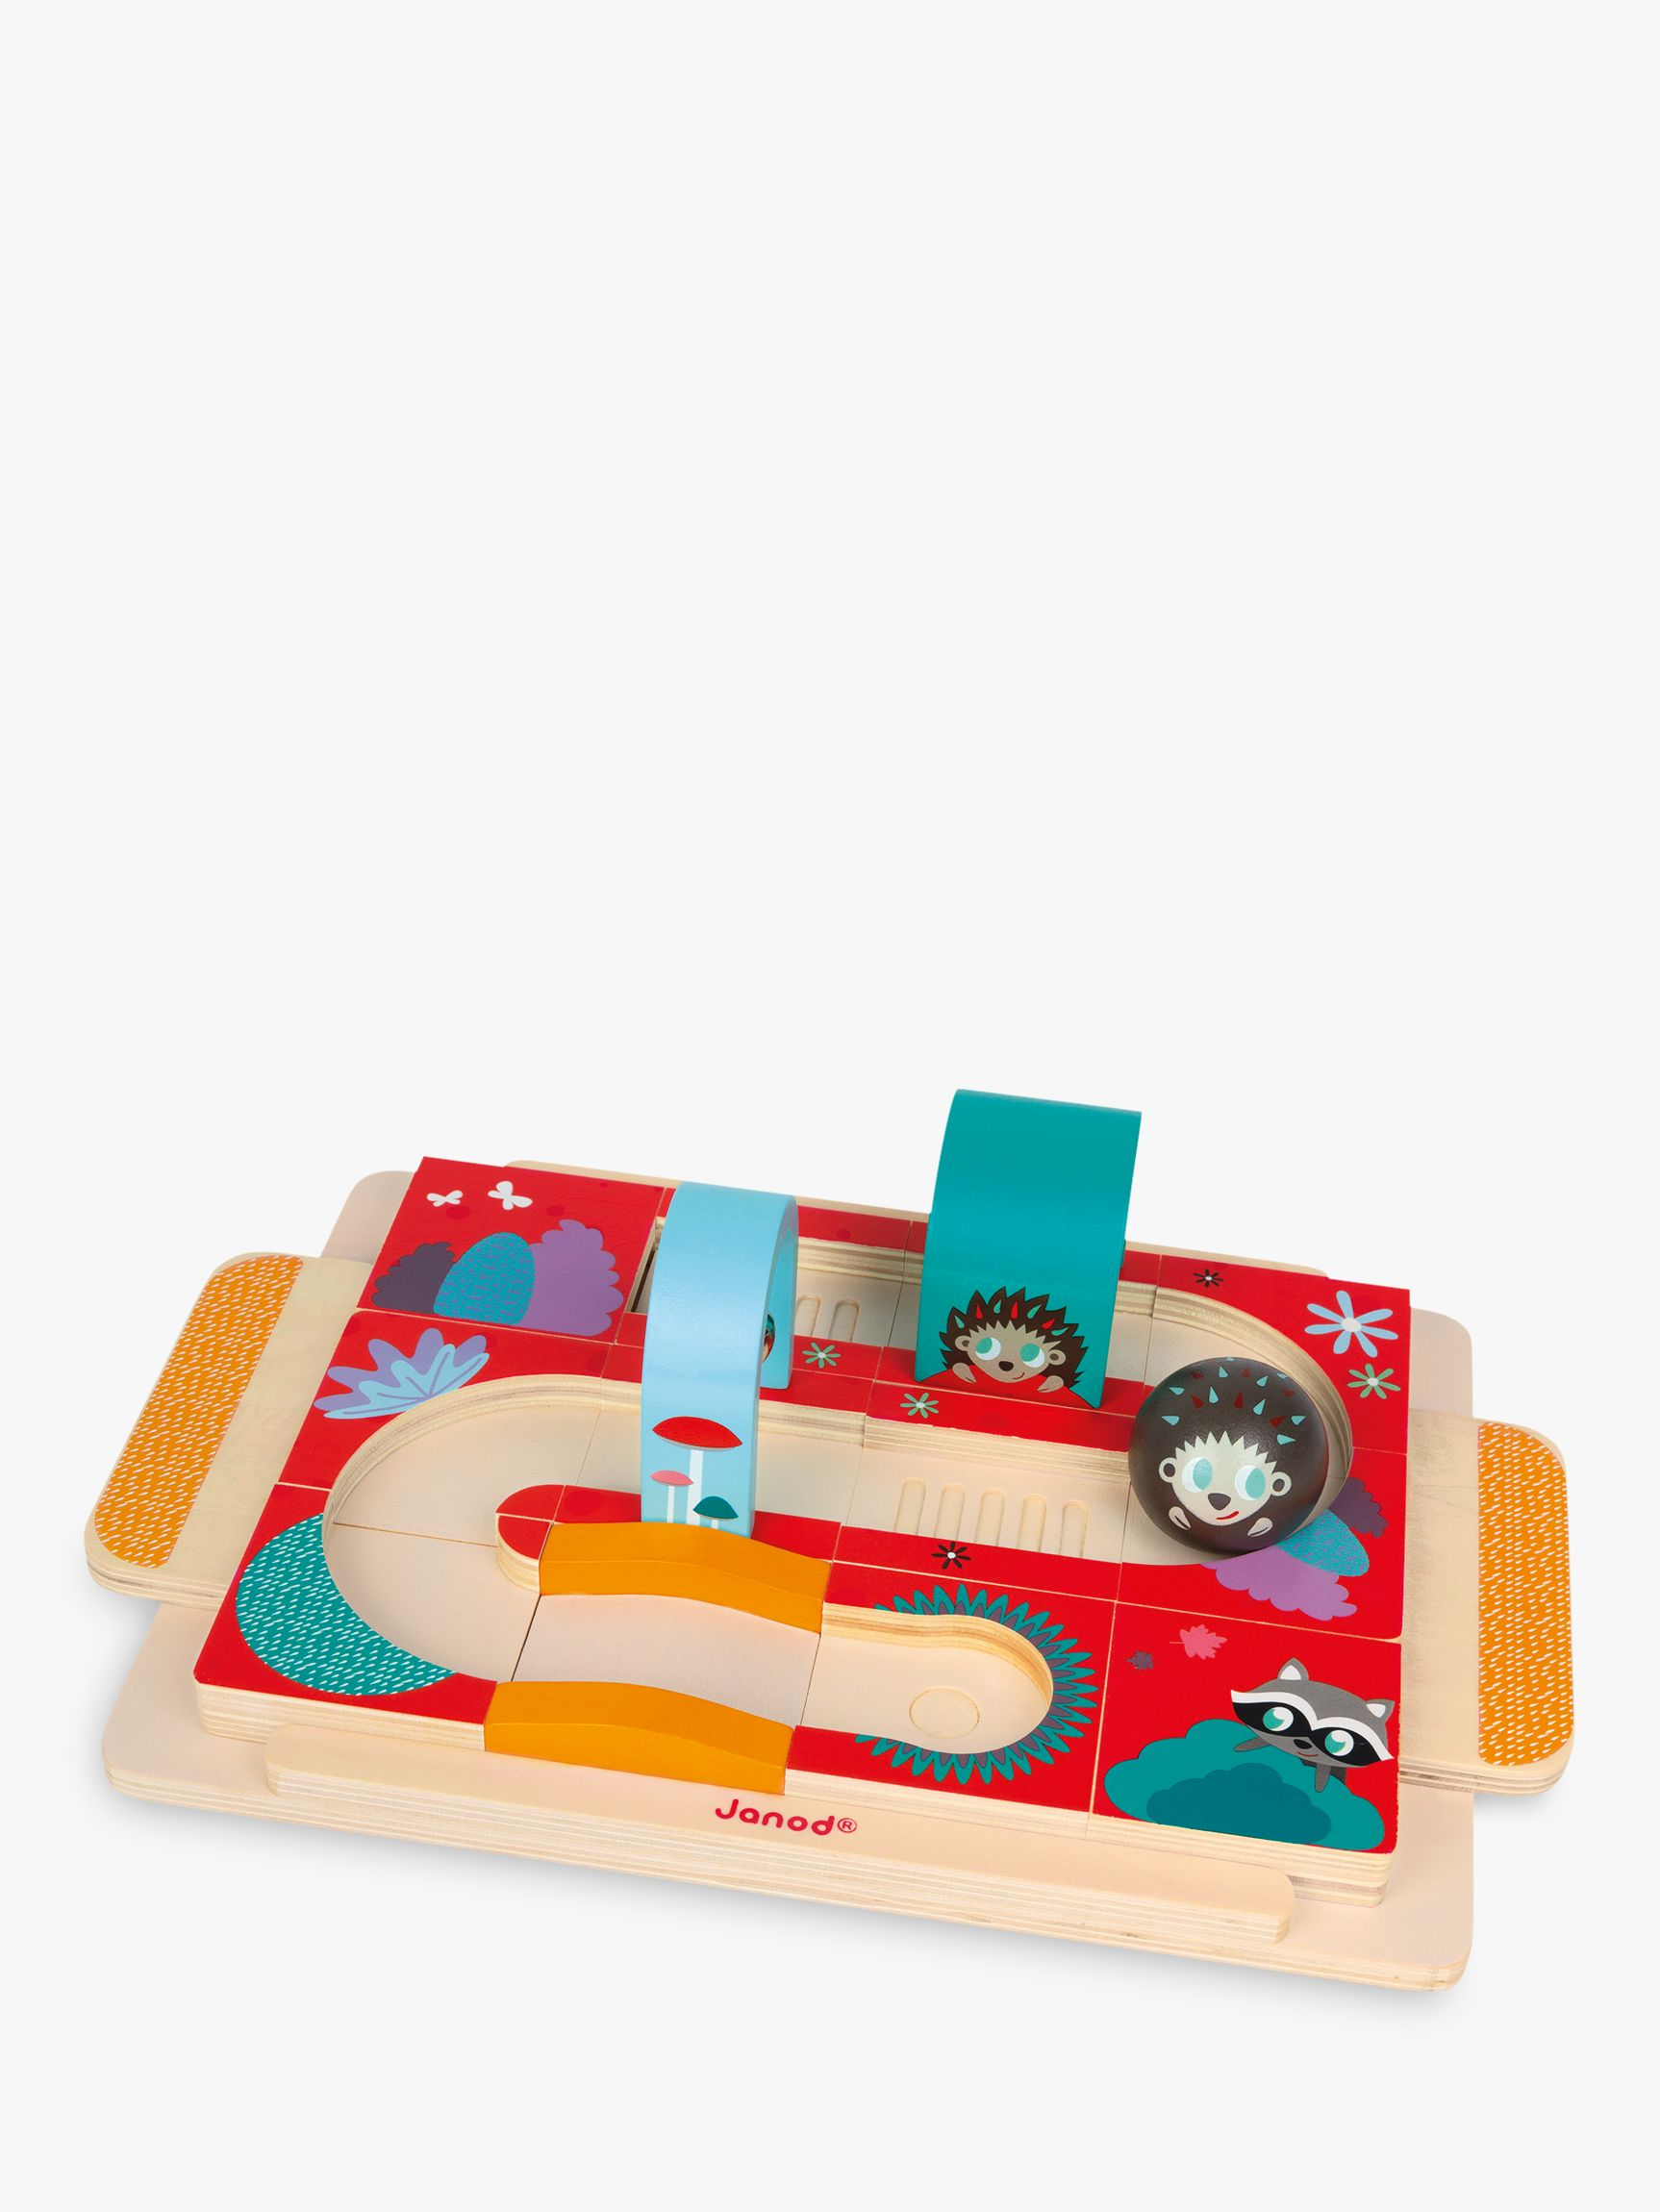 Janod Janod Hedgehog Rally Race Course Puzzle, 12 Pieces